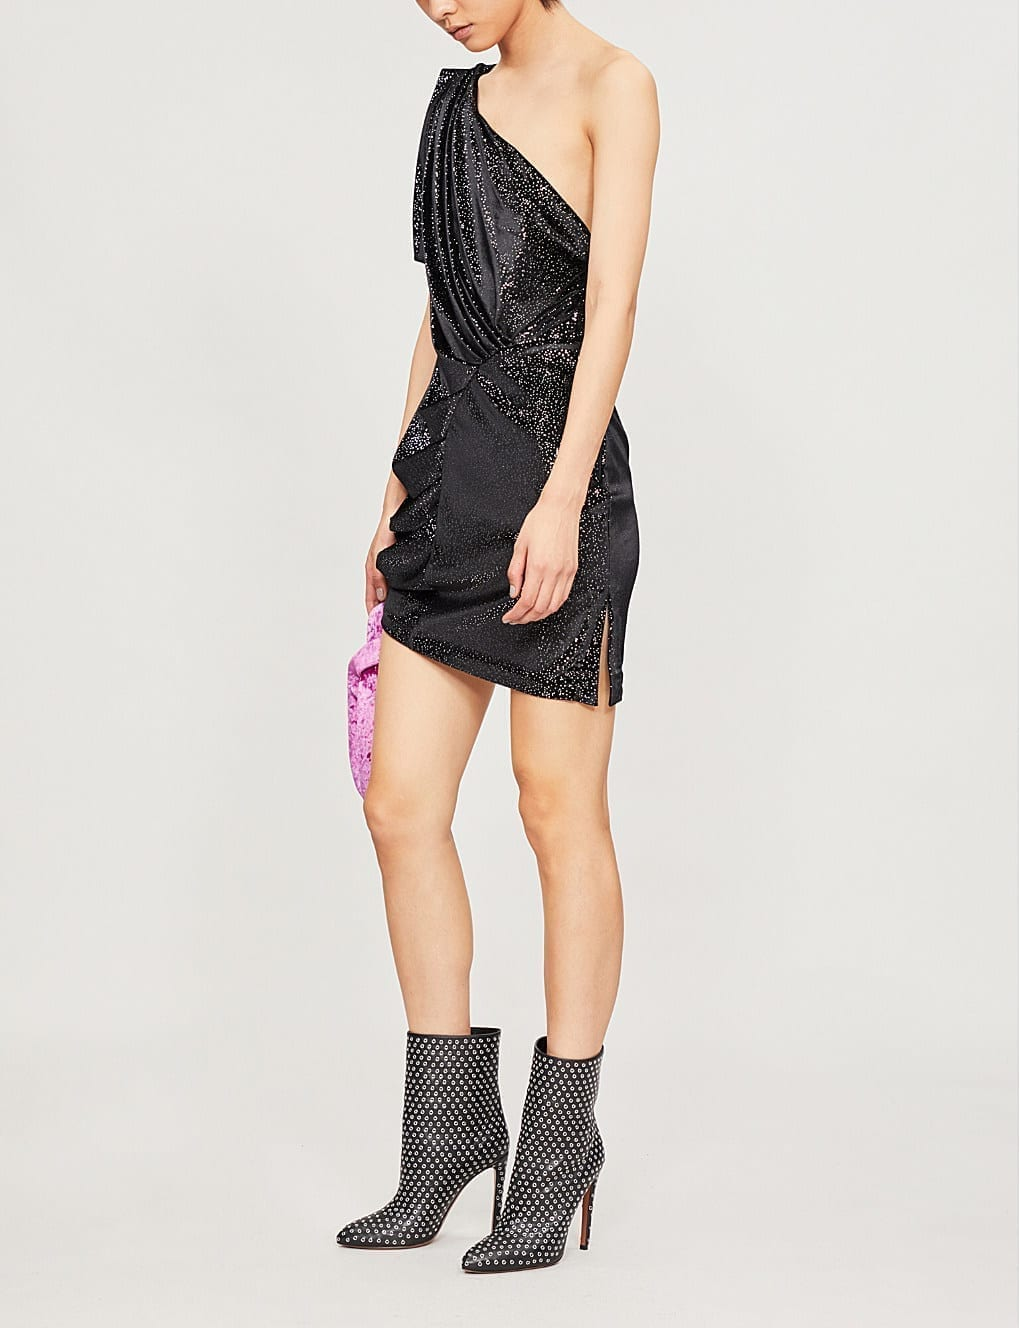 ATTICO One-Shoulder Metallic Velvet Mini Black Dress_2